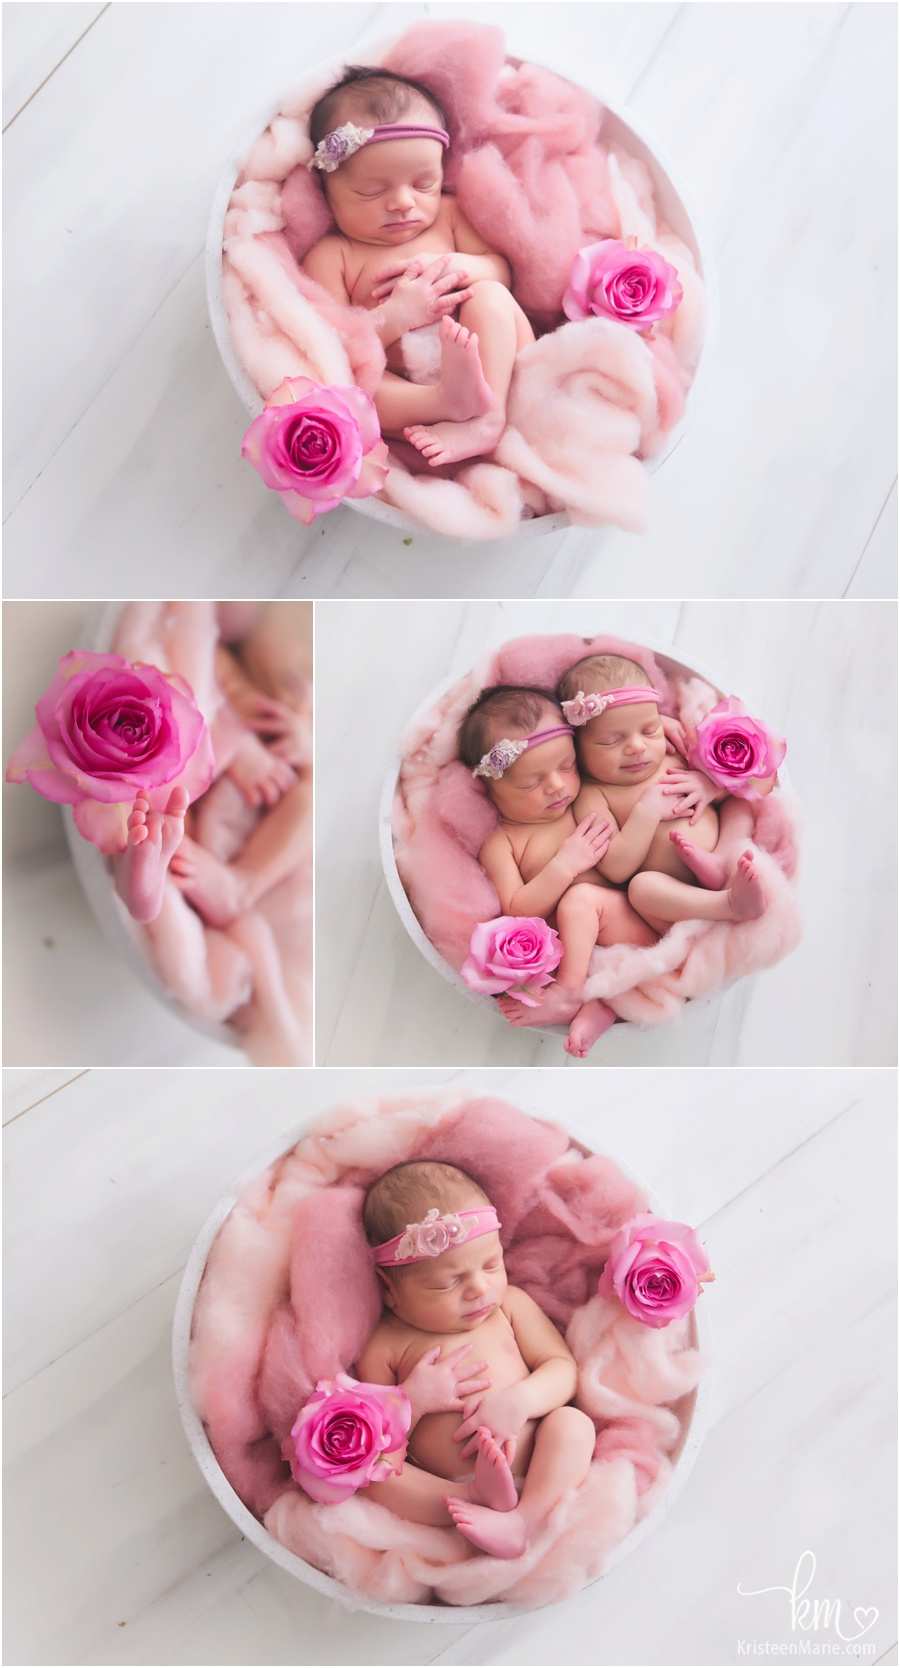 twin girls with fresh flowers - roses and pink